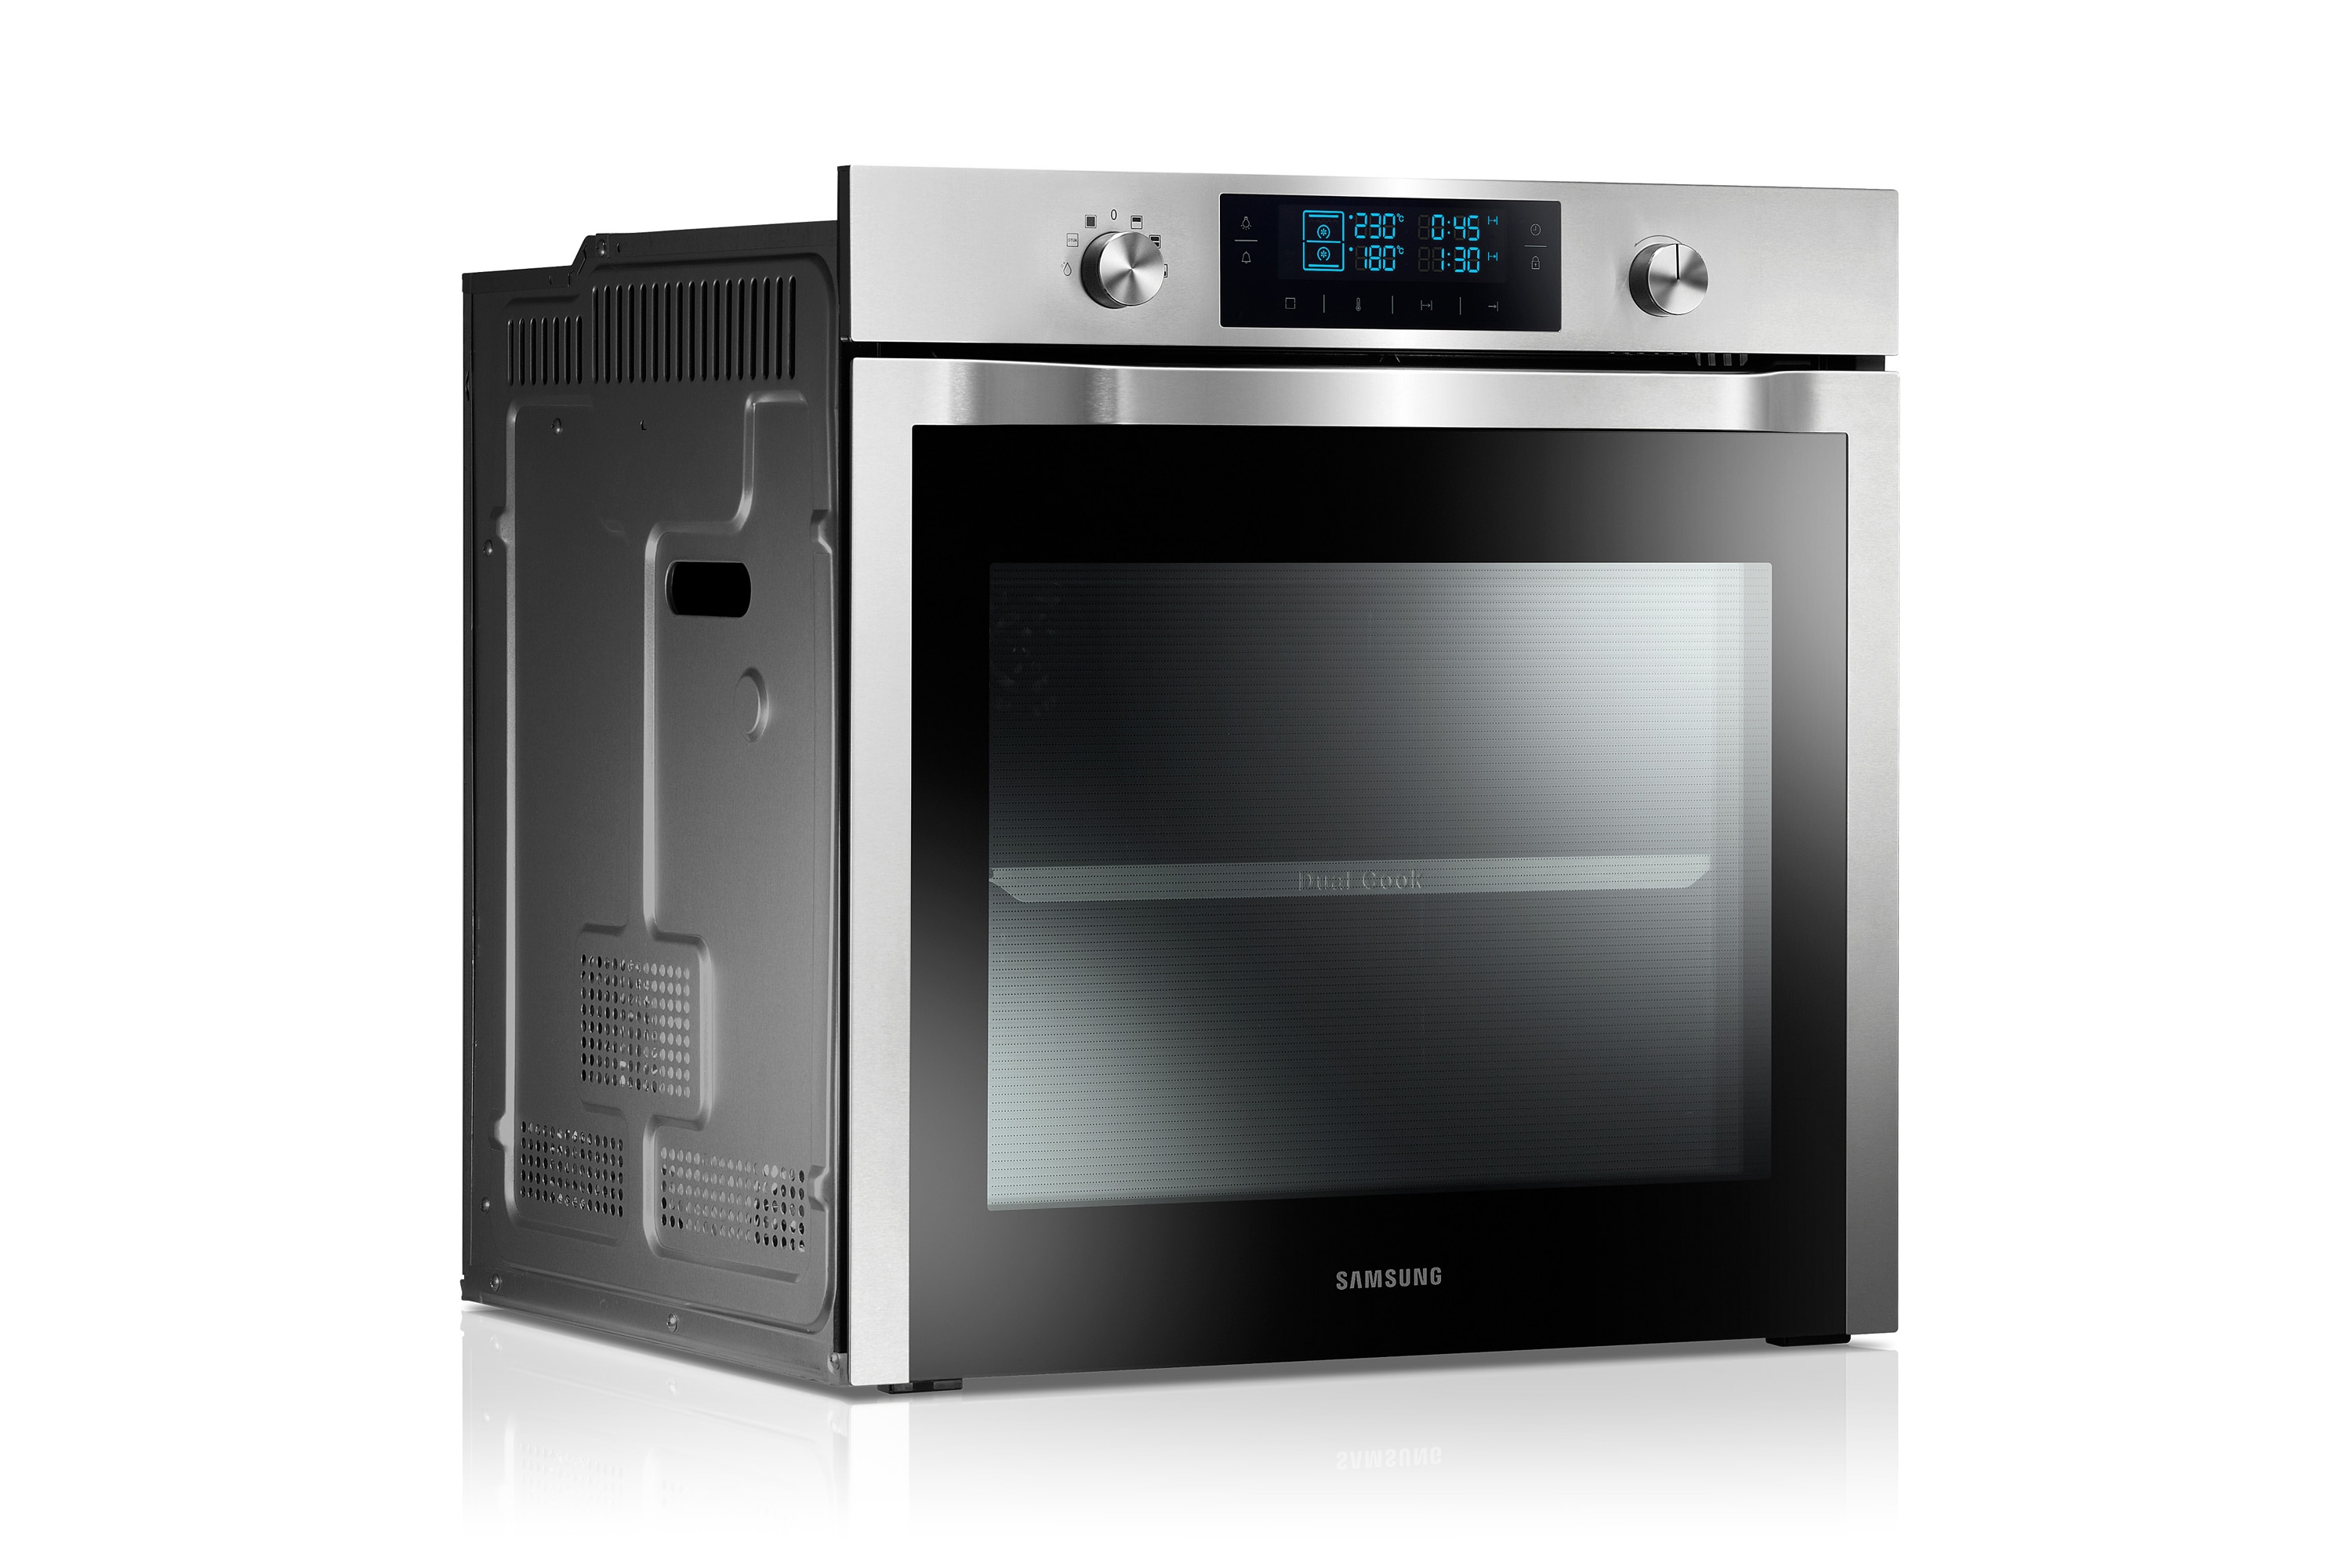 samsung nv70f7786hs neo convection oven. Black Bedroom Furniture Sets. Home Design Ideas